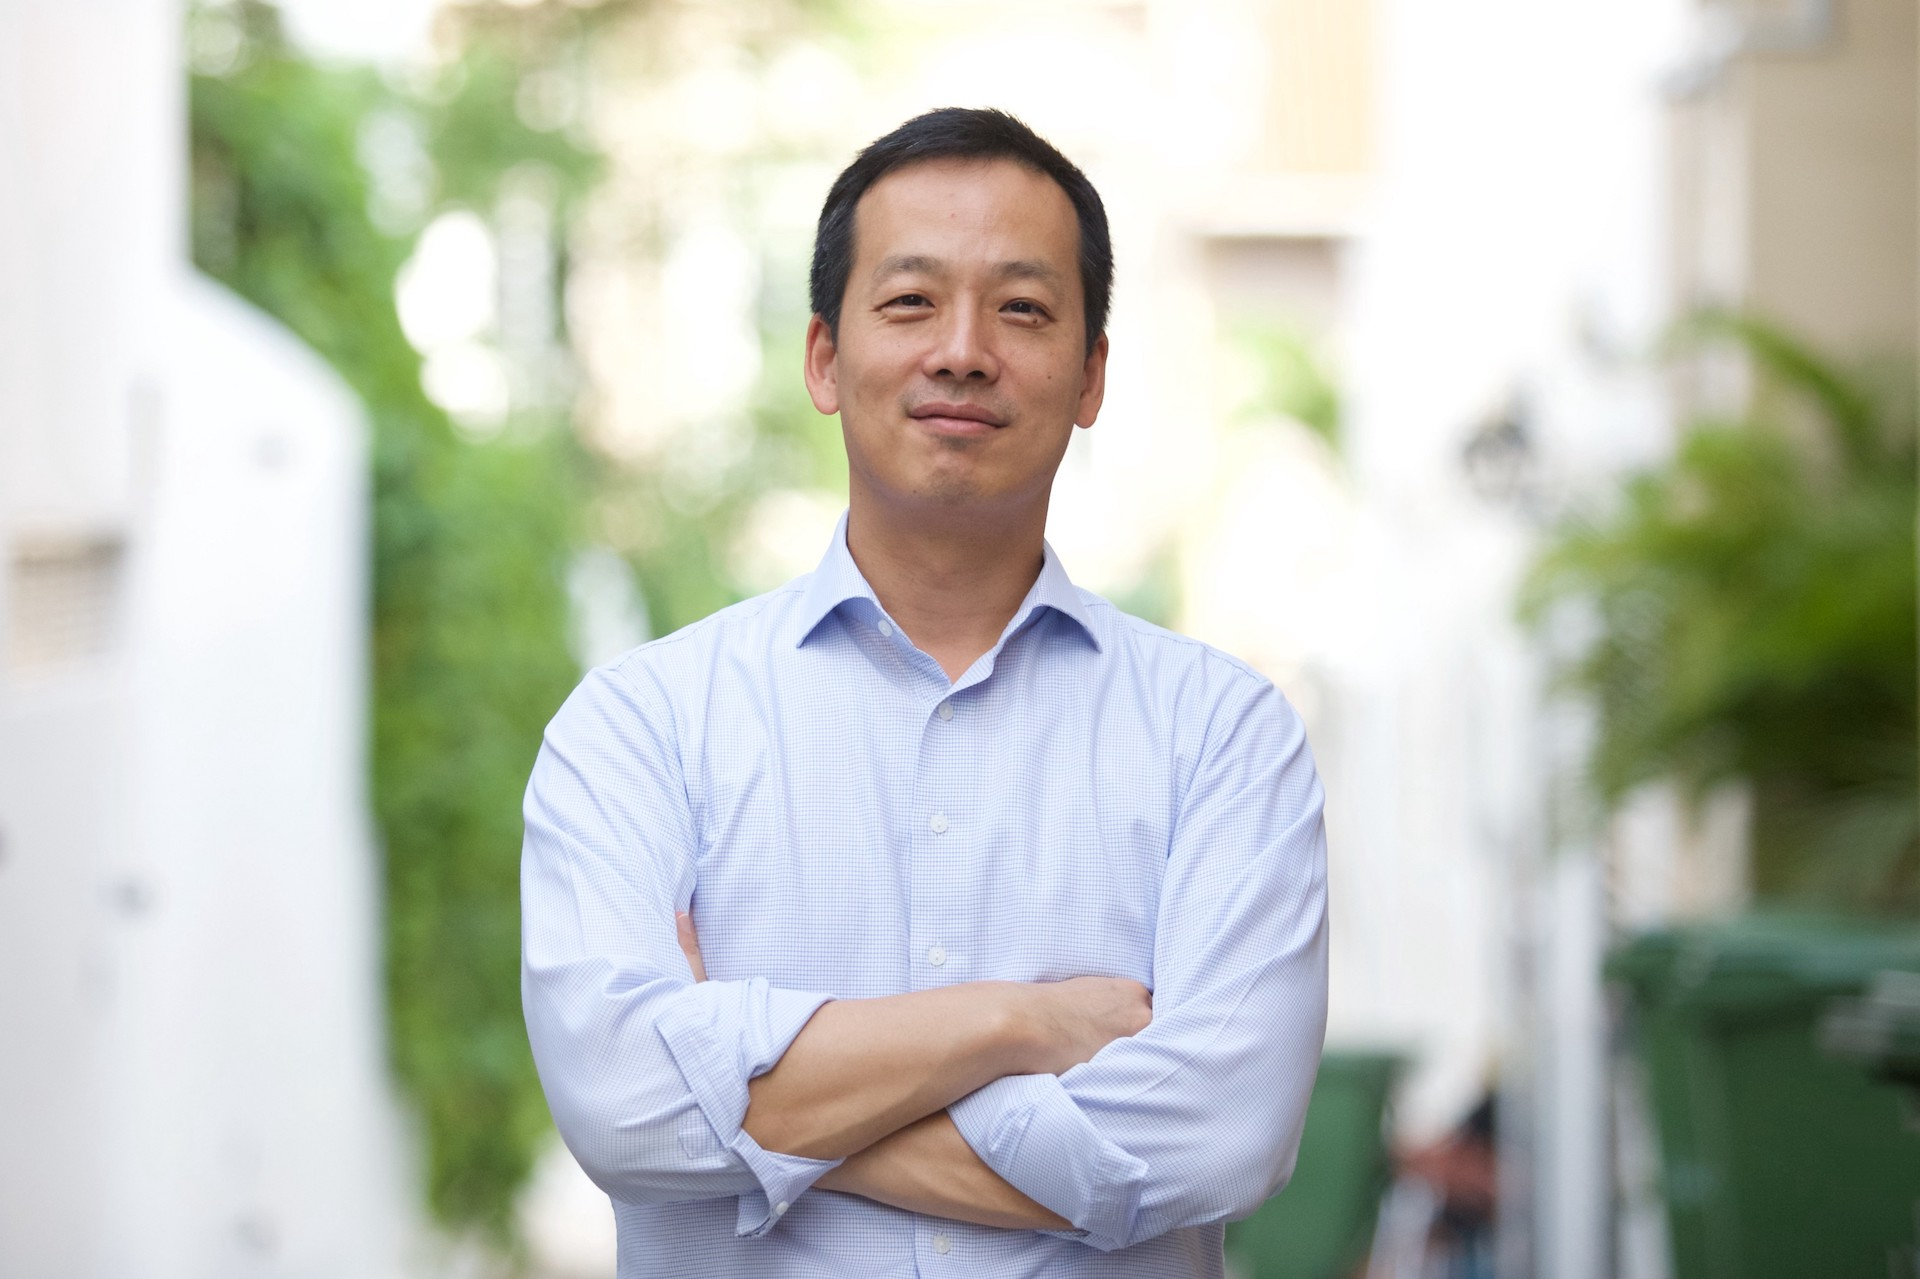 Samuel Rhee is the Chairman & Chief Investment Officer, Endowus